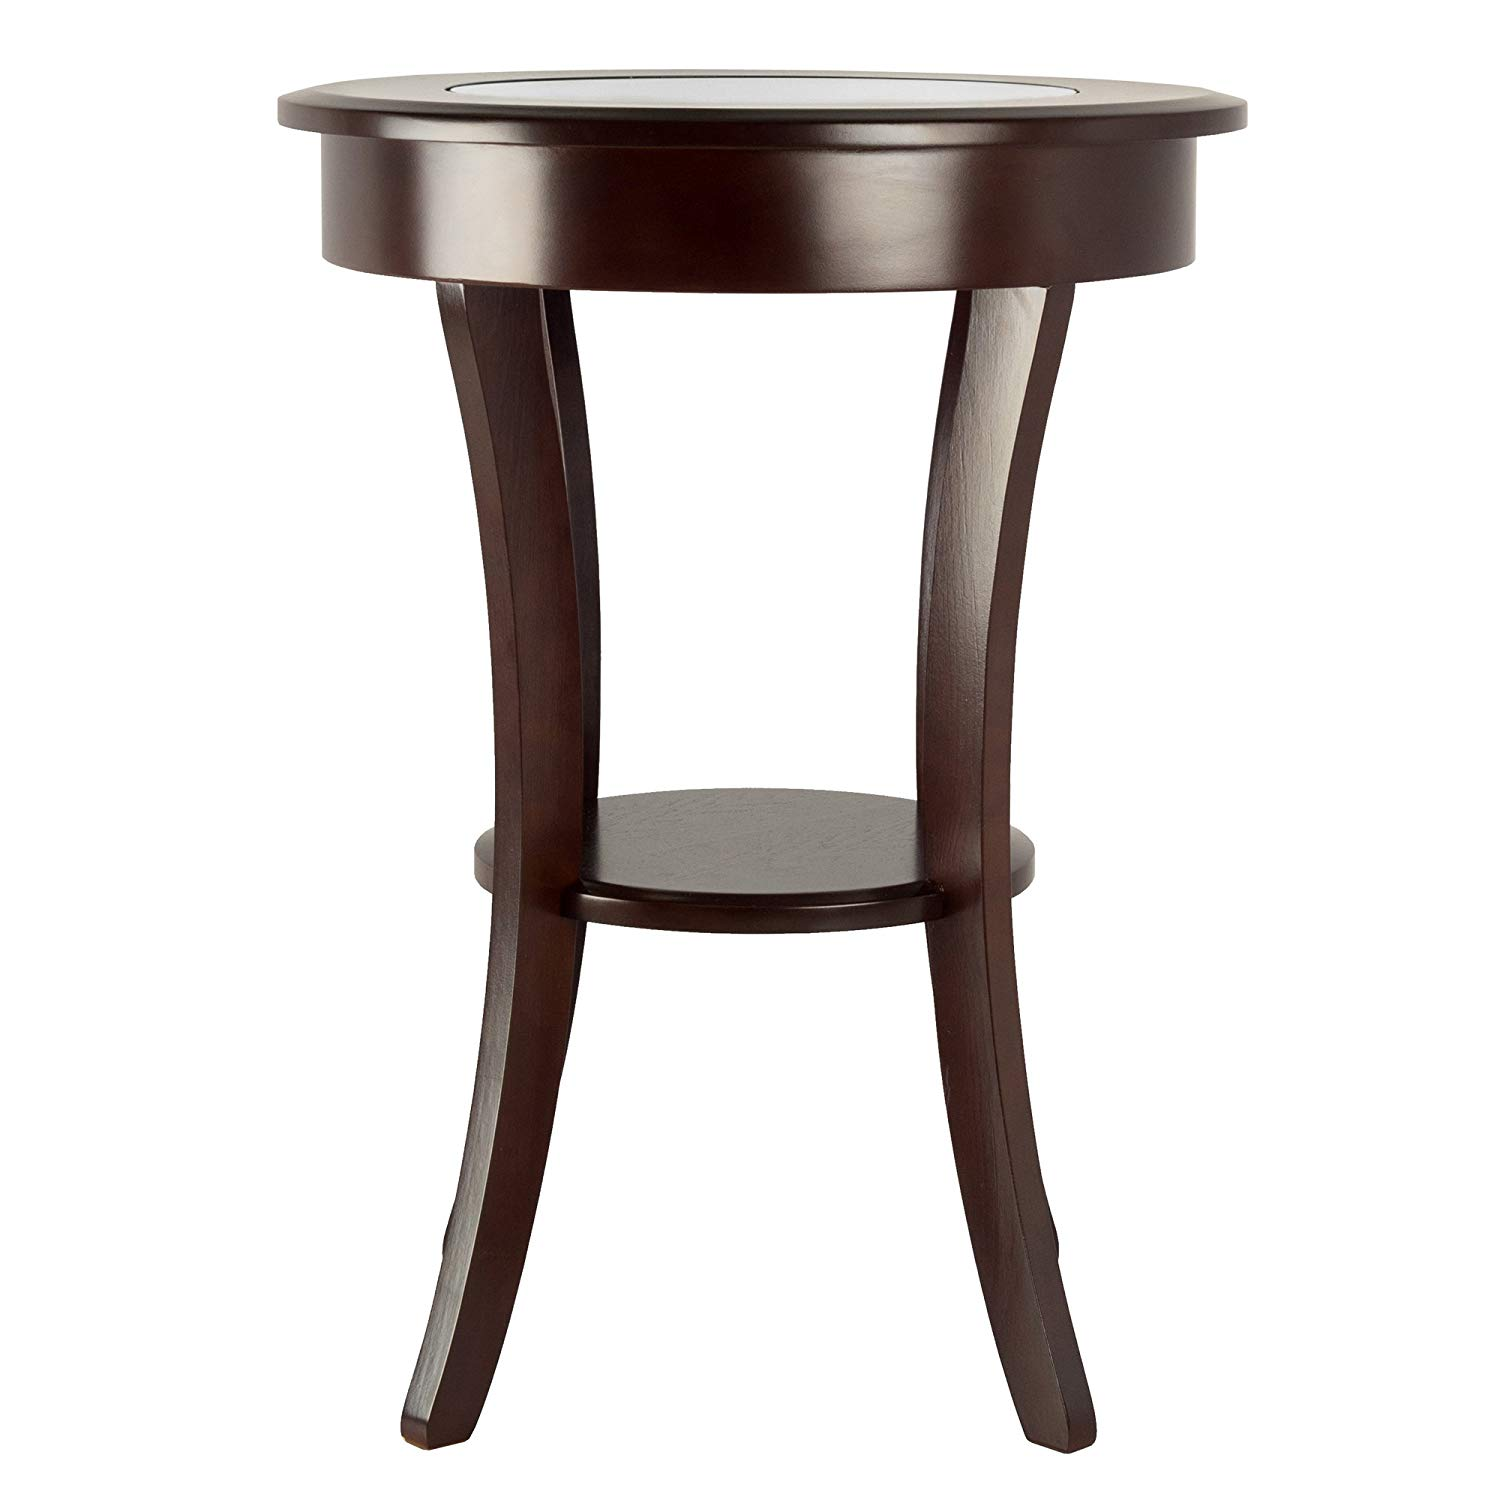 winsome wood cassie accent table cappuccino round with glass kitchen dining mosaic patio side antique nesting tables inlay ashley end swing arm lamp marble furniture outdoor